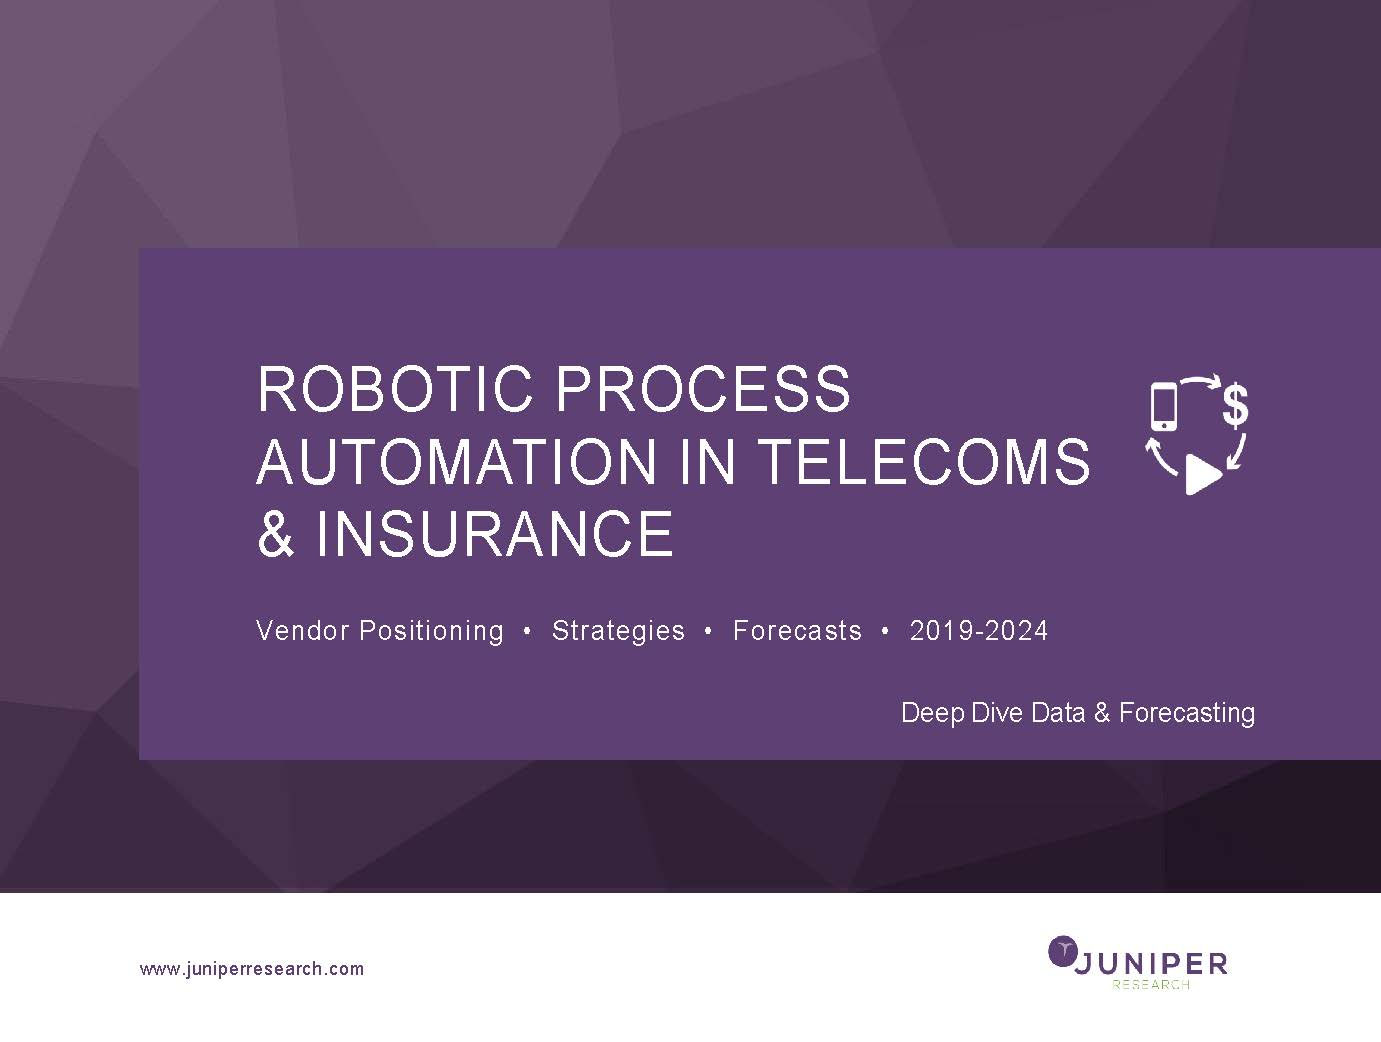 Robotic Process Automation in Telecom and Insurance: Deep Dive Data and Forecasting 2019-2024